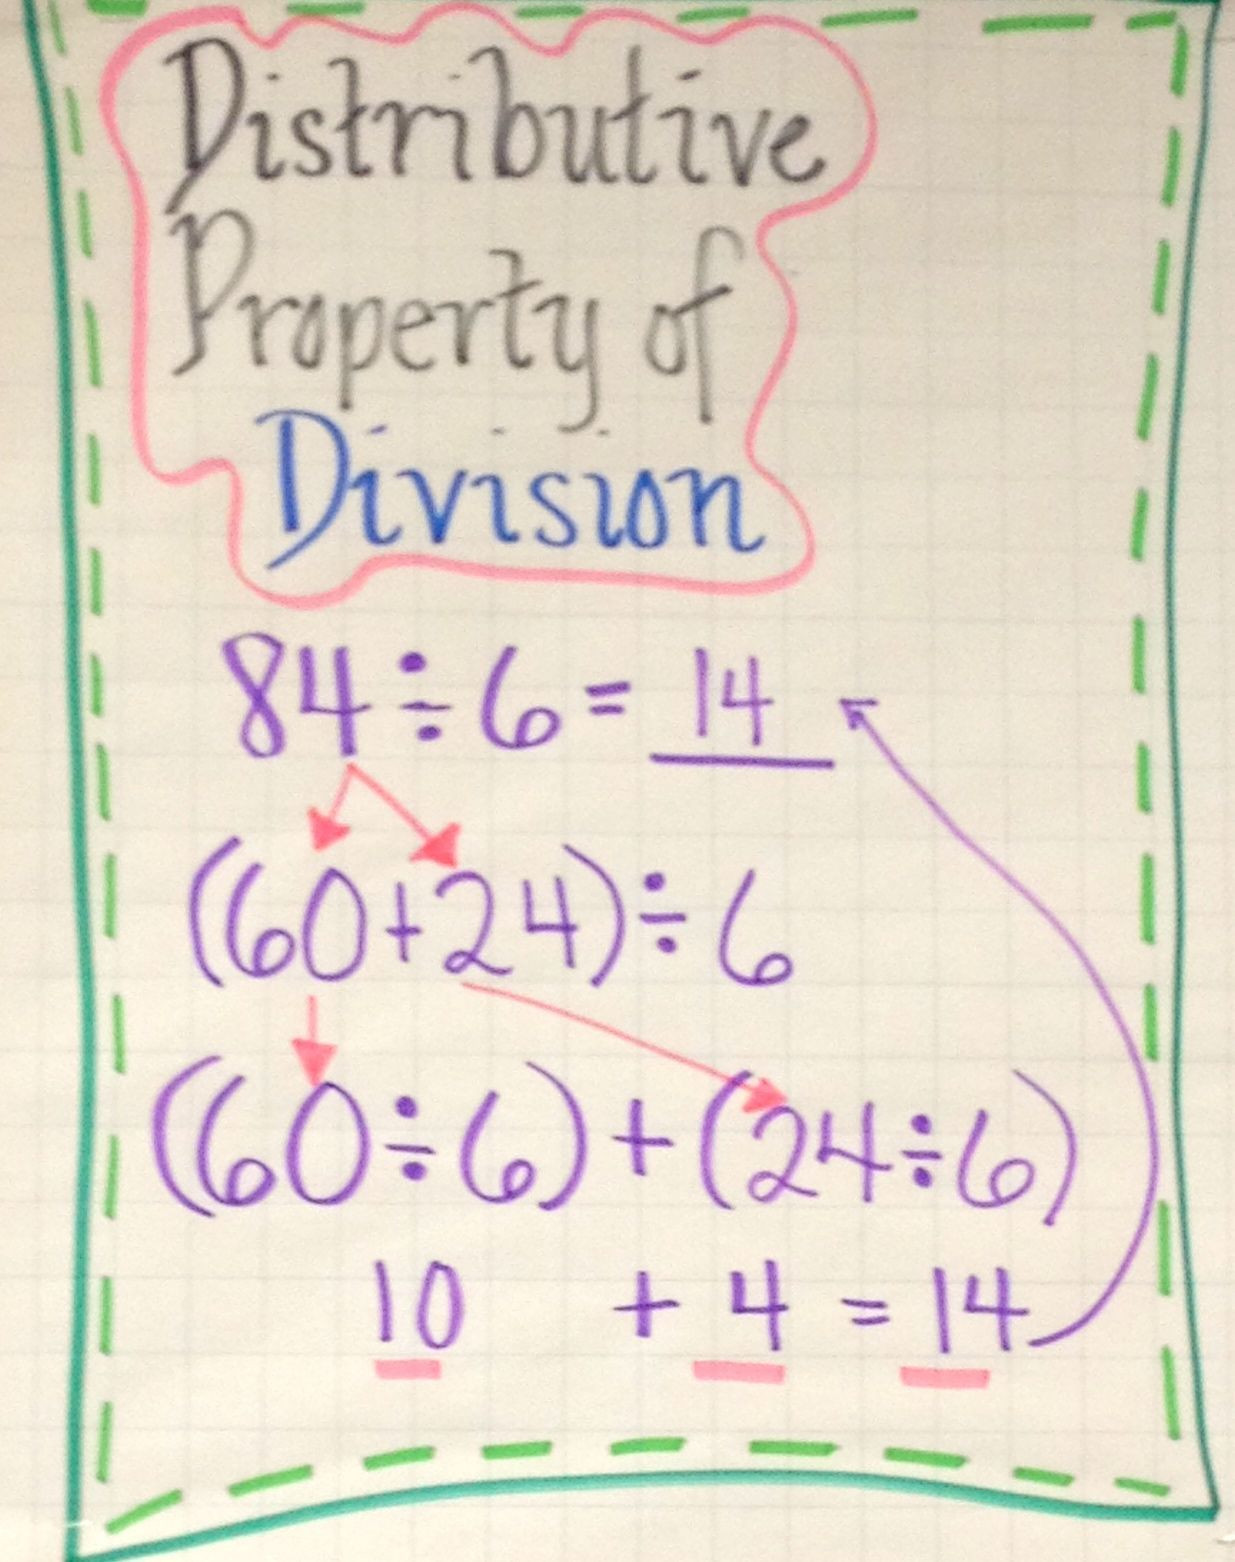 Distributive Property Worksheet 4th Grade Distributive Property Of Division Anchor Chart